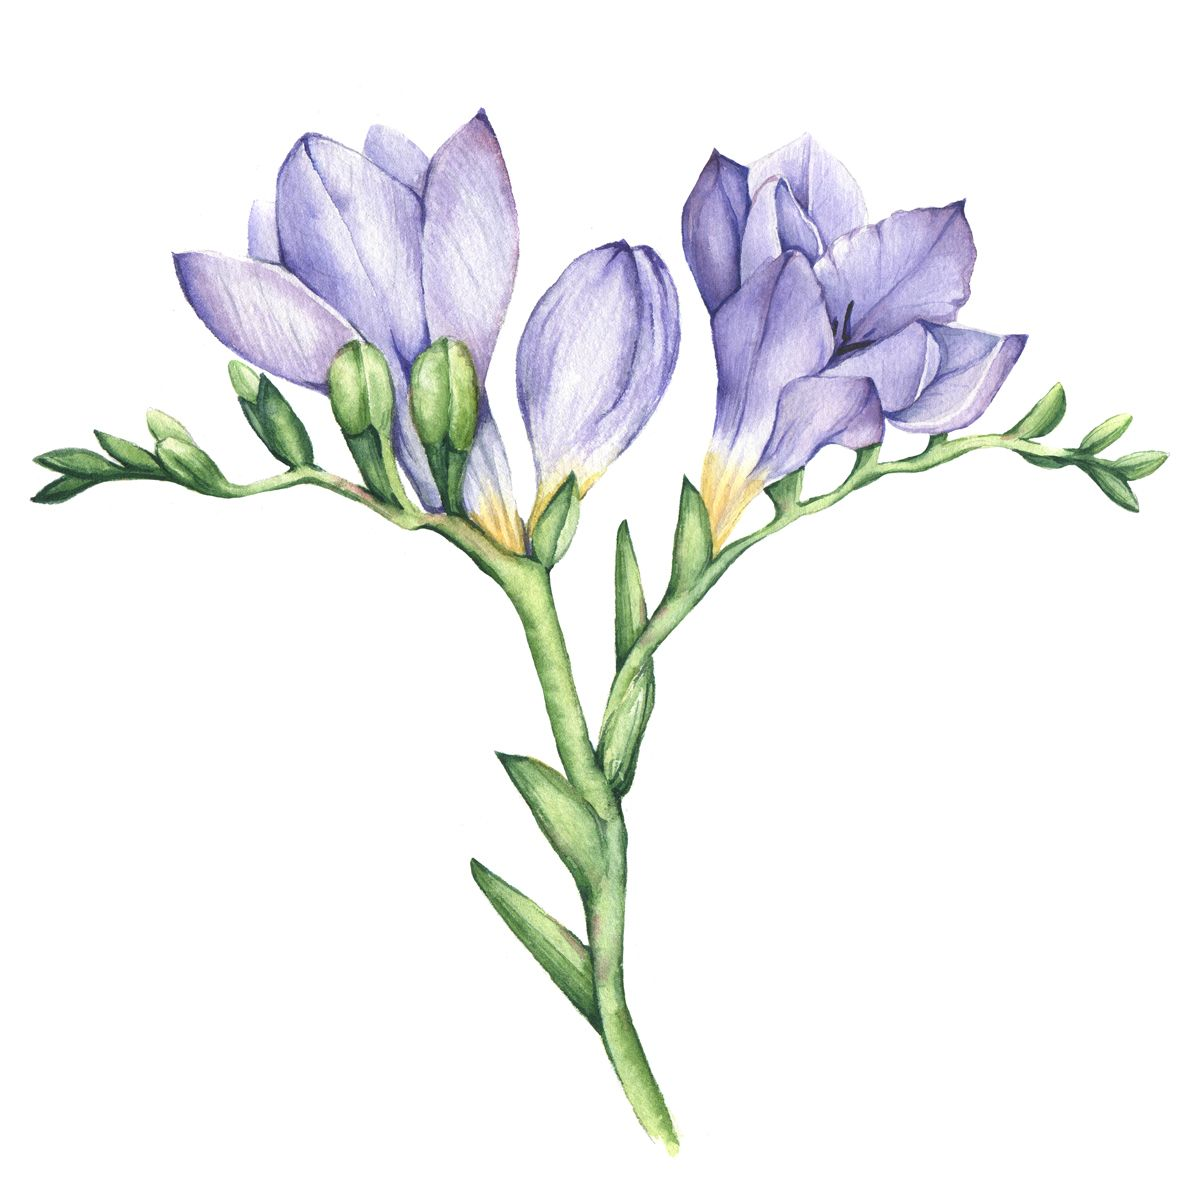 Freesia Flowers On Behance Watercolor Flowers Paintings Flower Drawing Freesia Flowers